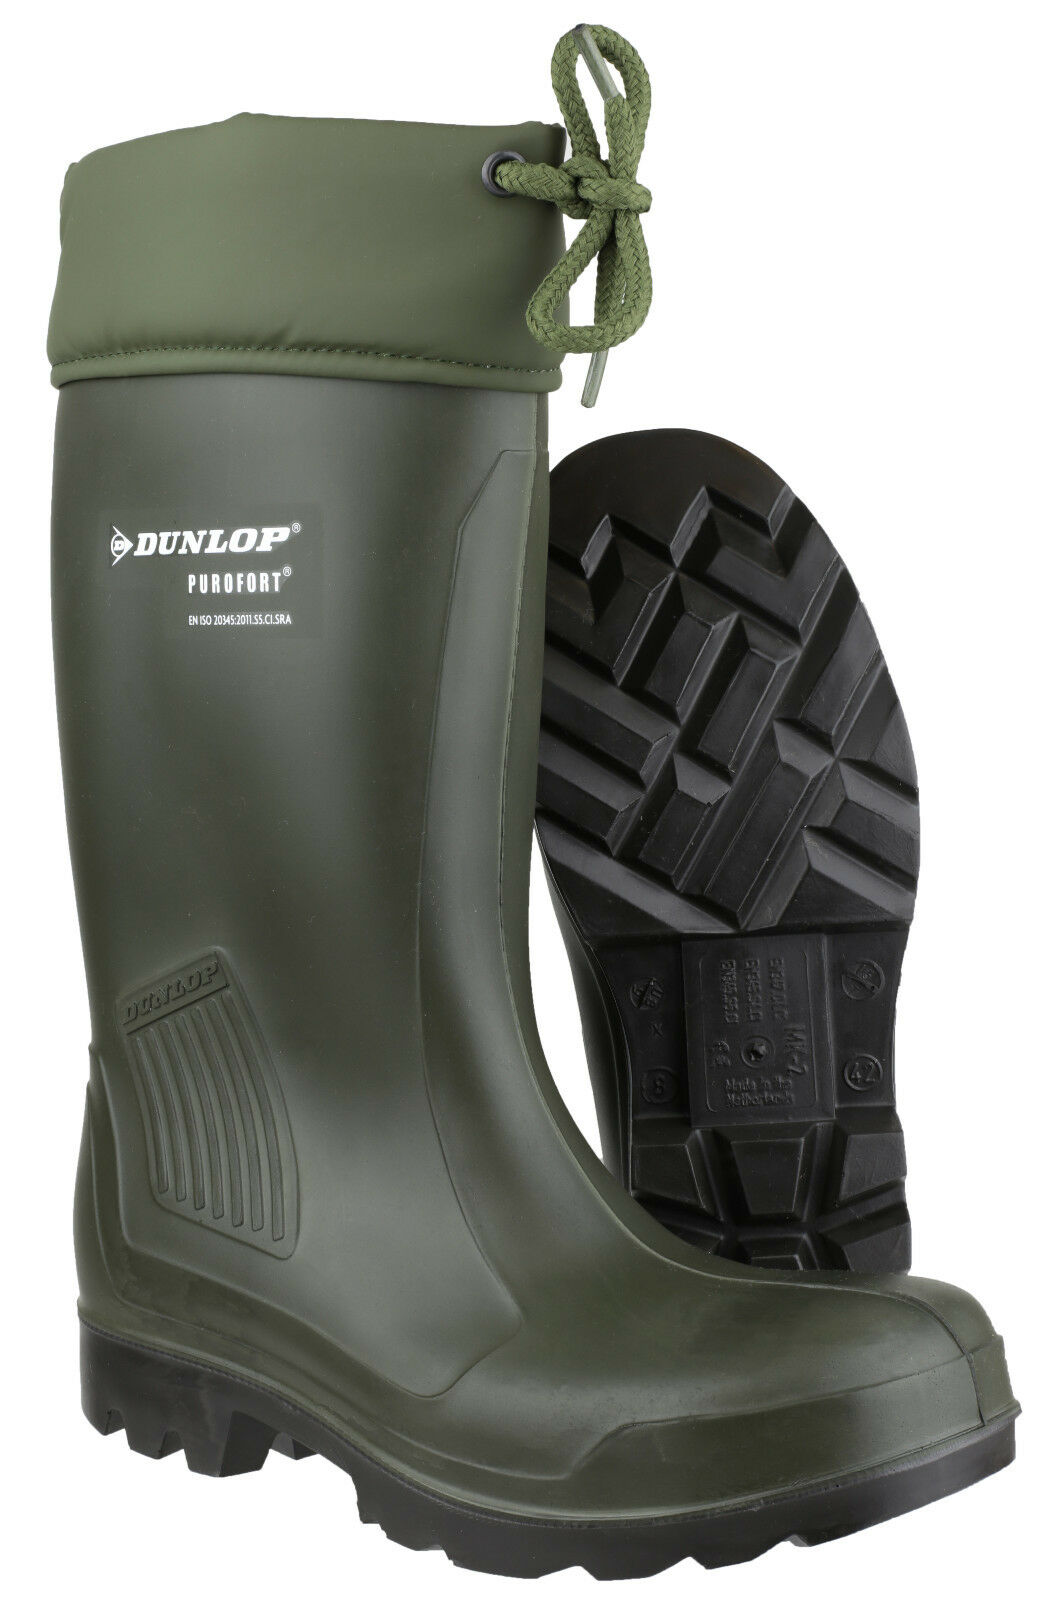 Dunlop Thermoflex Safety Waterproof Unisex Work Pull On Wellingtons UK4-12